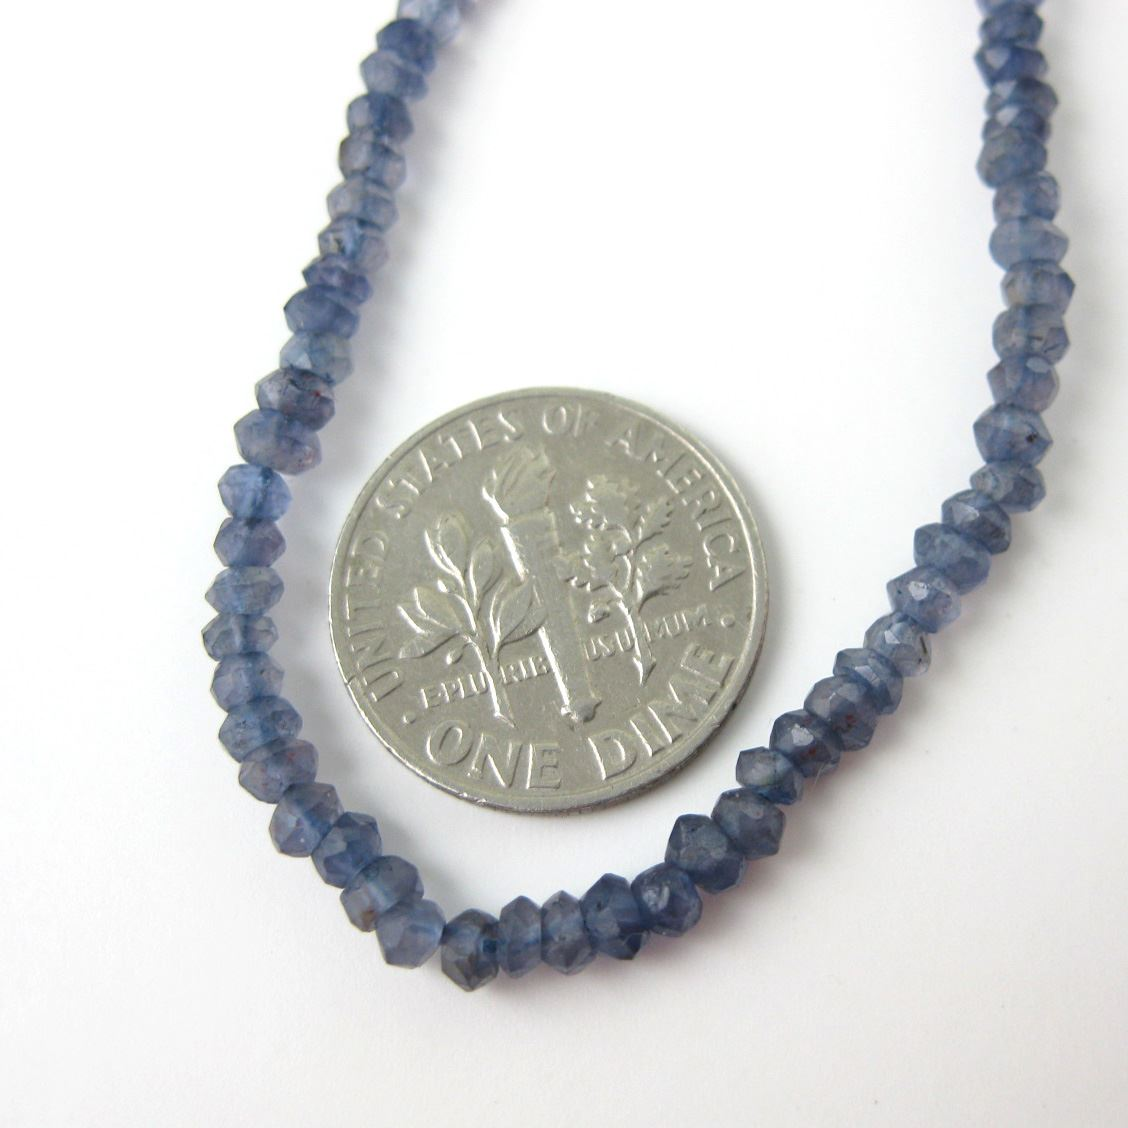 Gemstone beads - Iolite Micro Faceted Rondelle - 3-3.5mm - 13 inches full strand